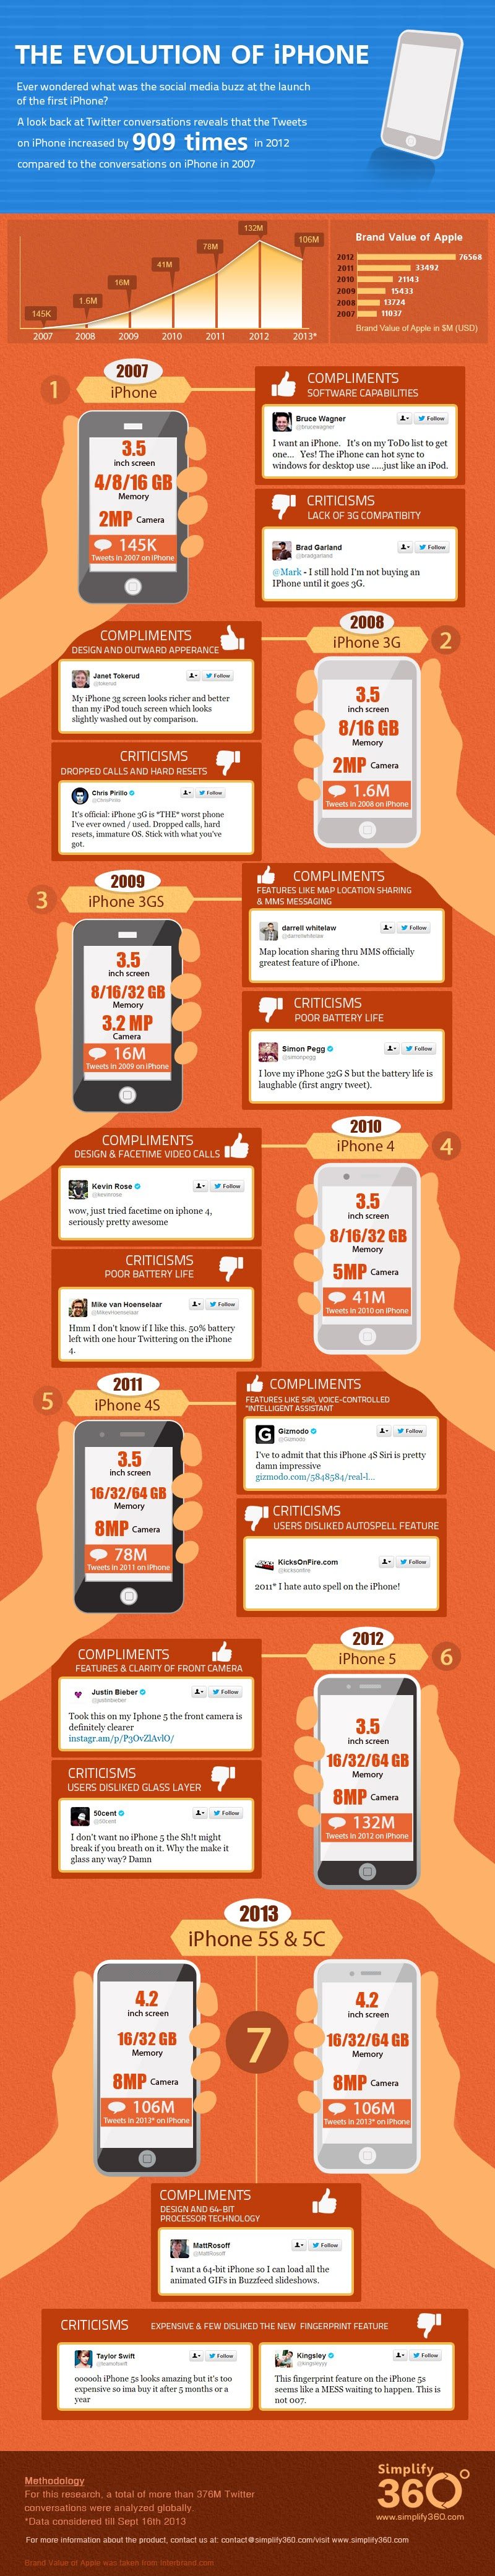 How-Social-Chatter-Of-iphone-Launch-Has-Changed-Over-The-Years #Infographic